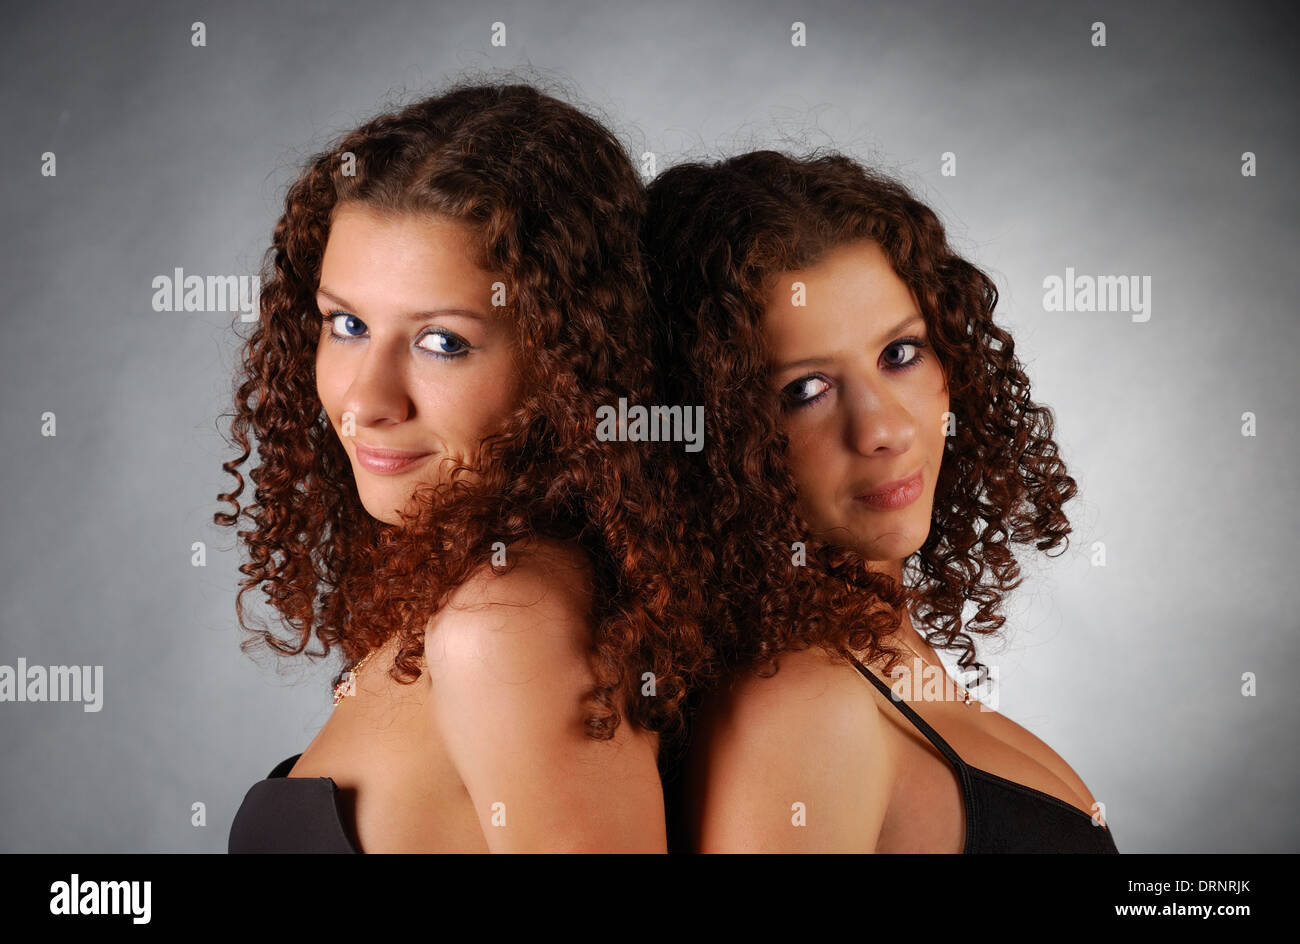 Portrait of twins back to back - Stock Image